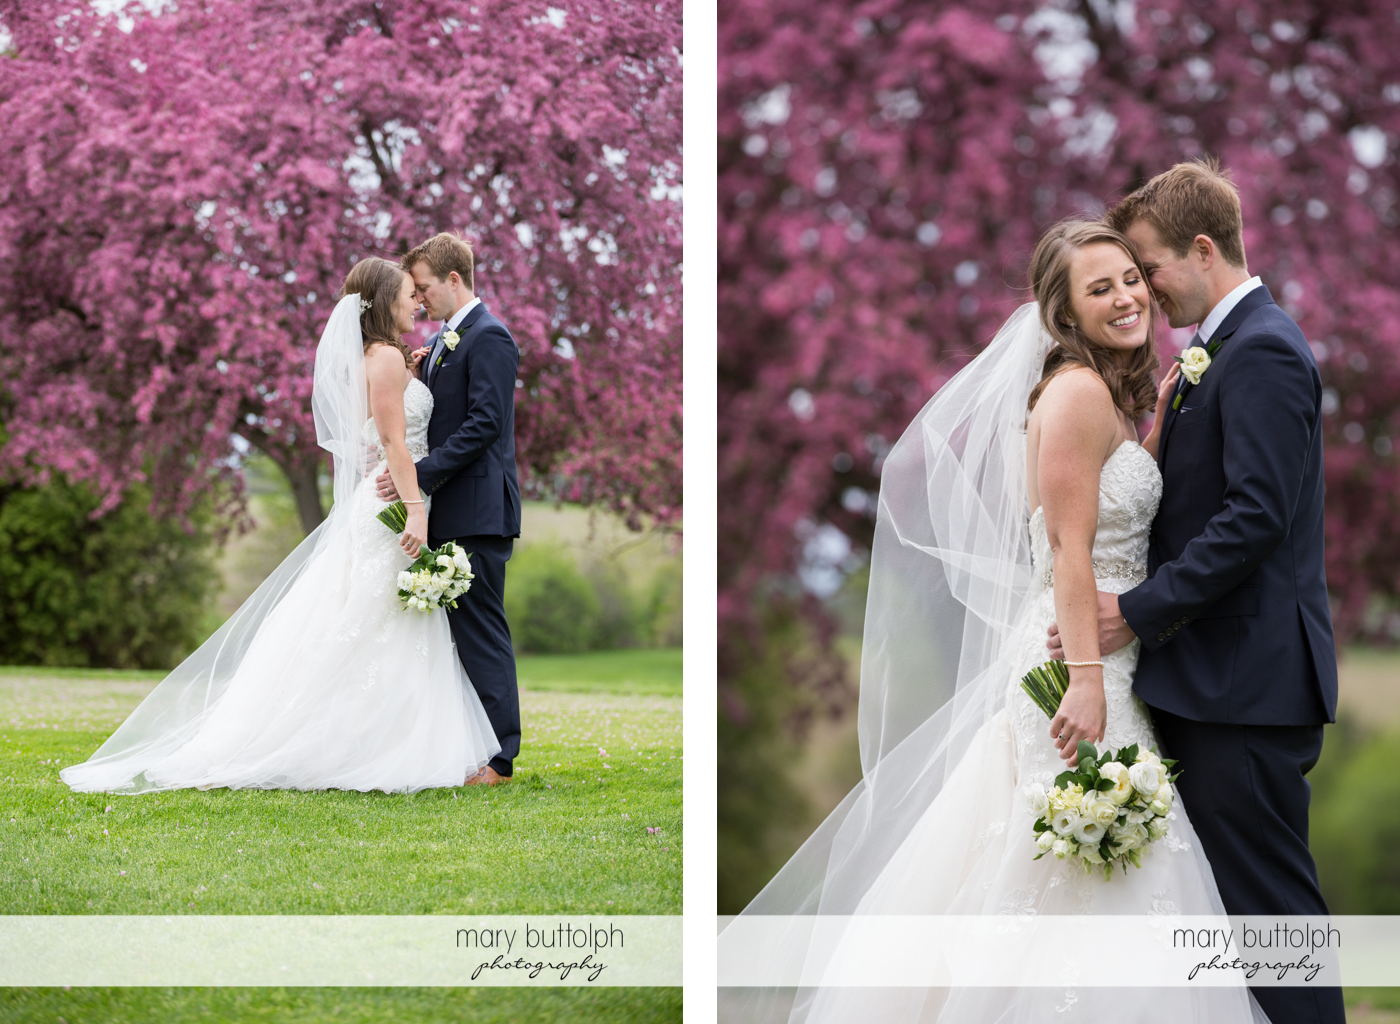 Couple pose in front of a tree with purple flowers at Skaneateles Country Club Wedding